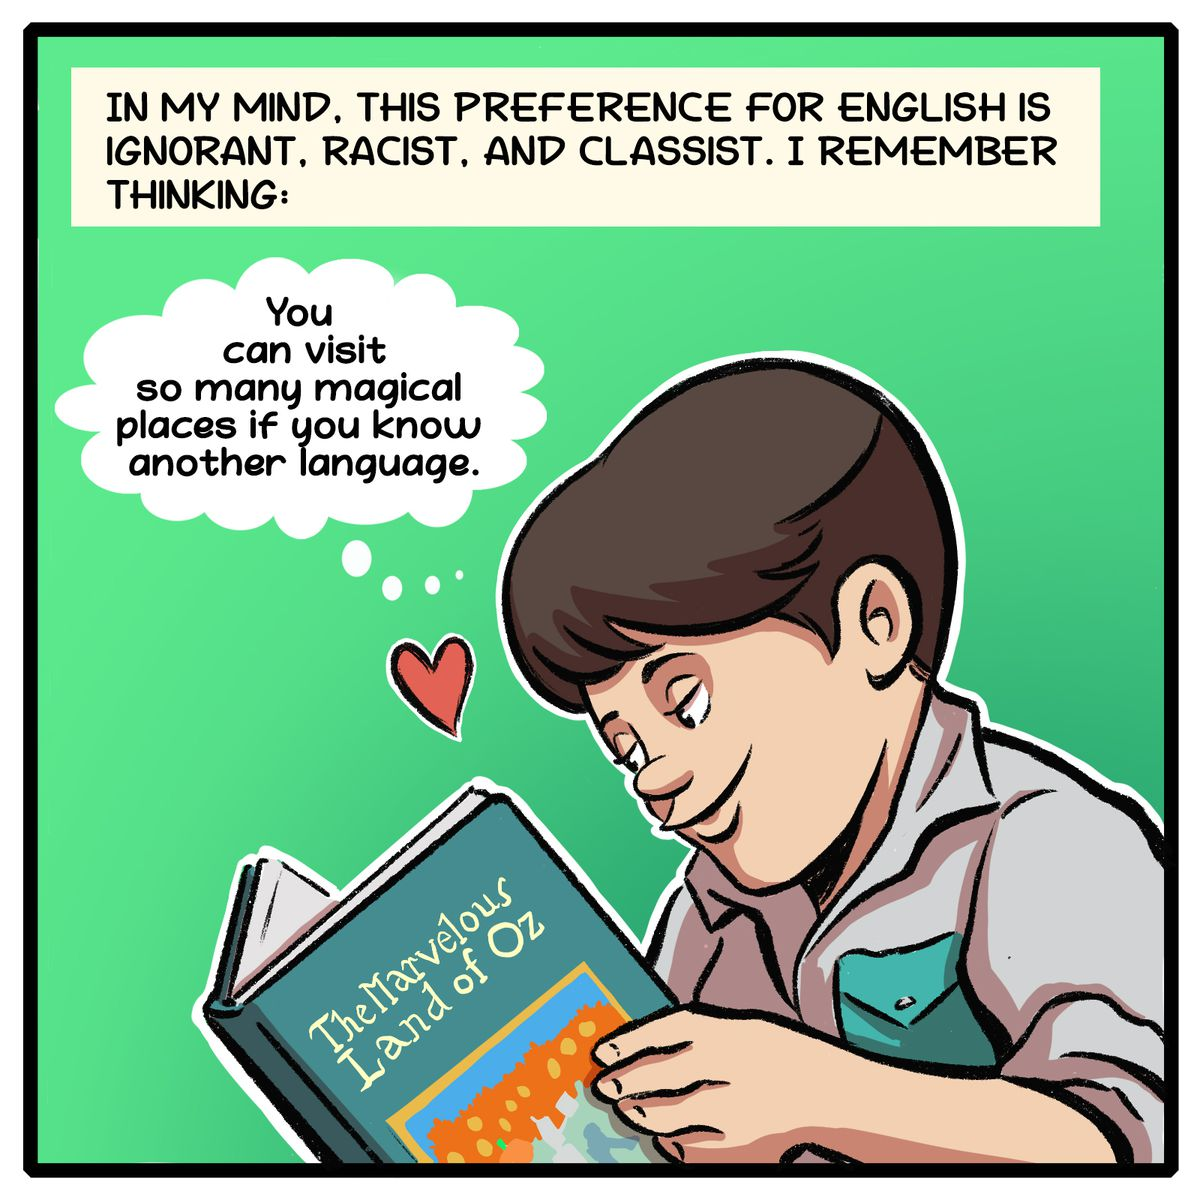 """In my mind, this preference for English is ignorant, racist, and classist. I remember thinking: """"You can visit so many magical places if you know another language."""""""